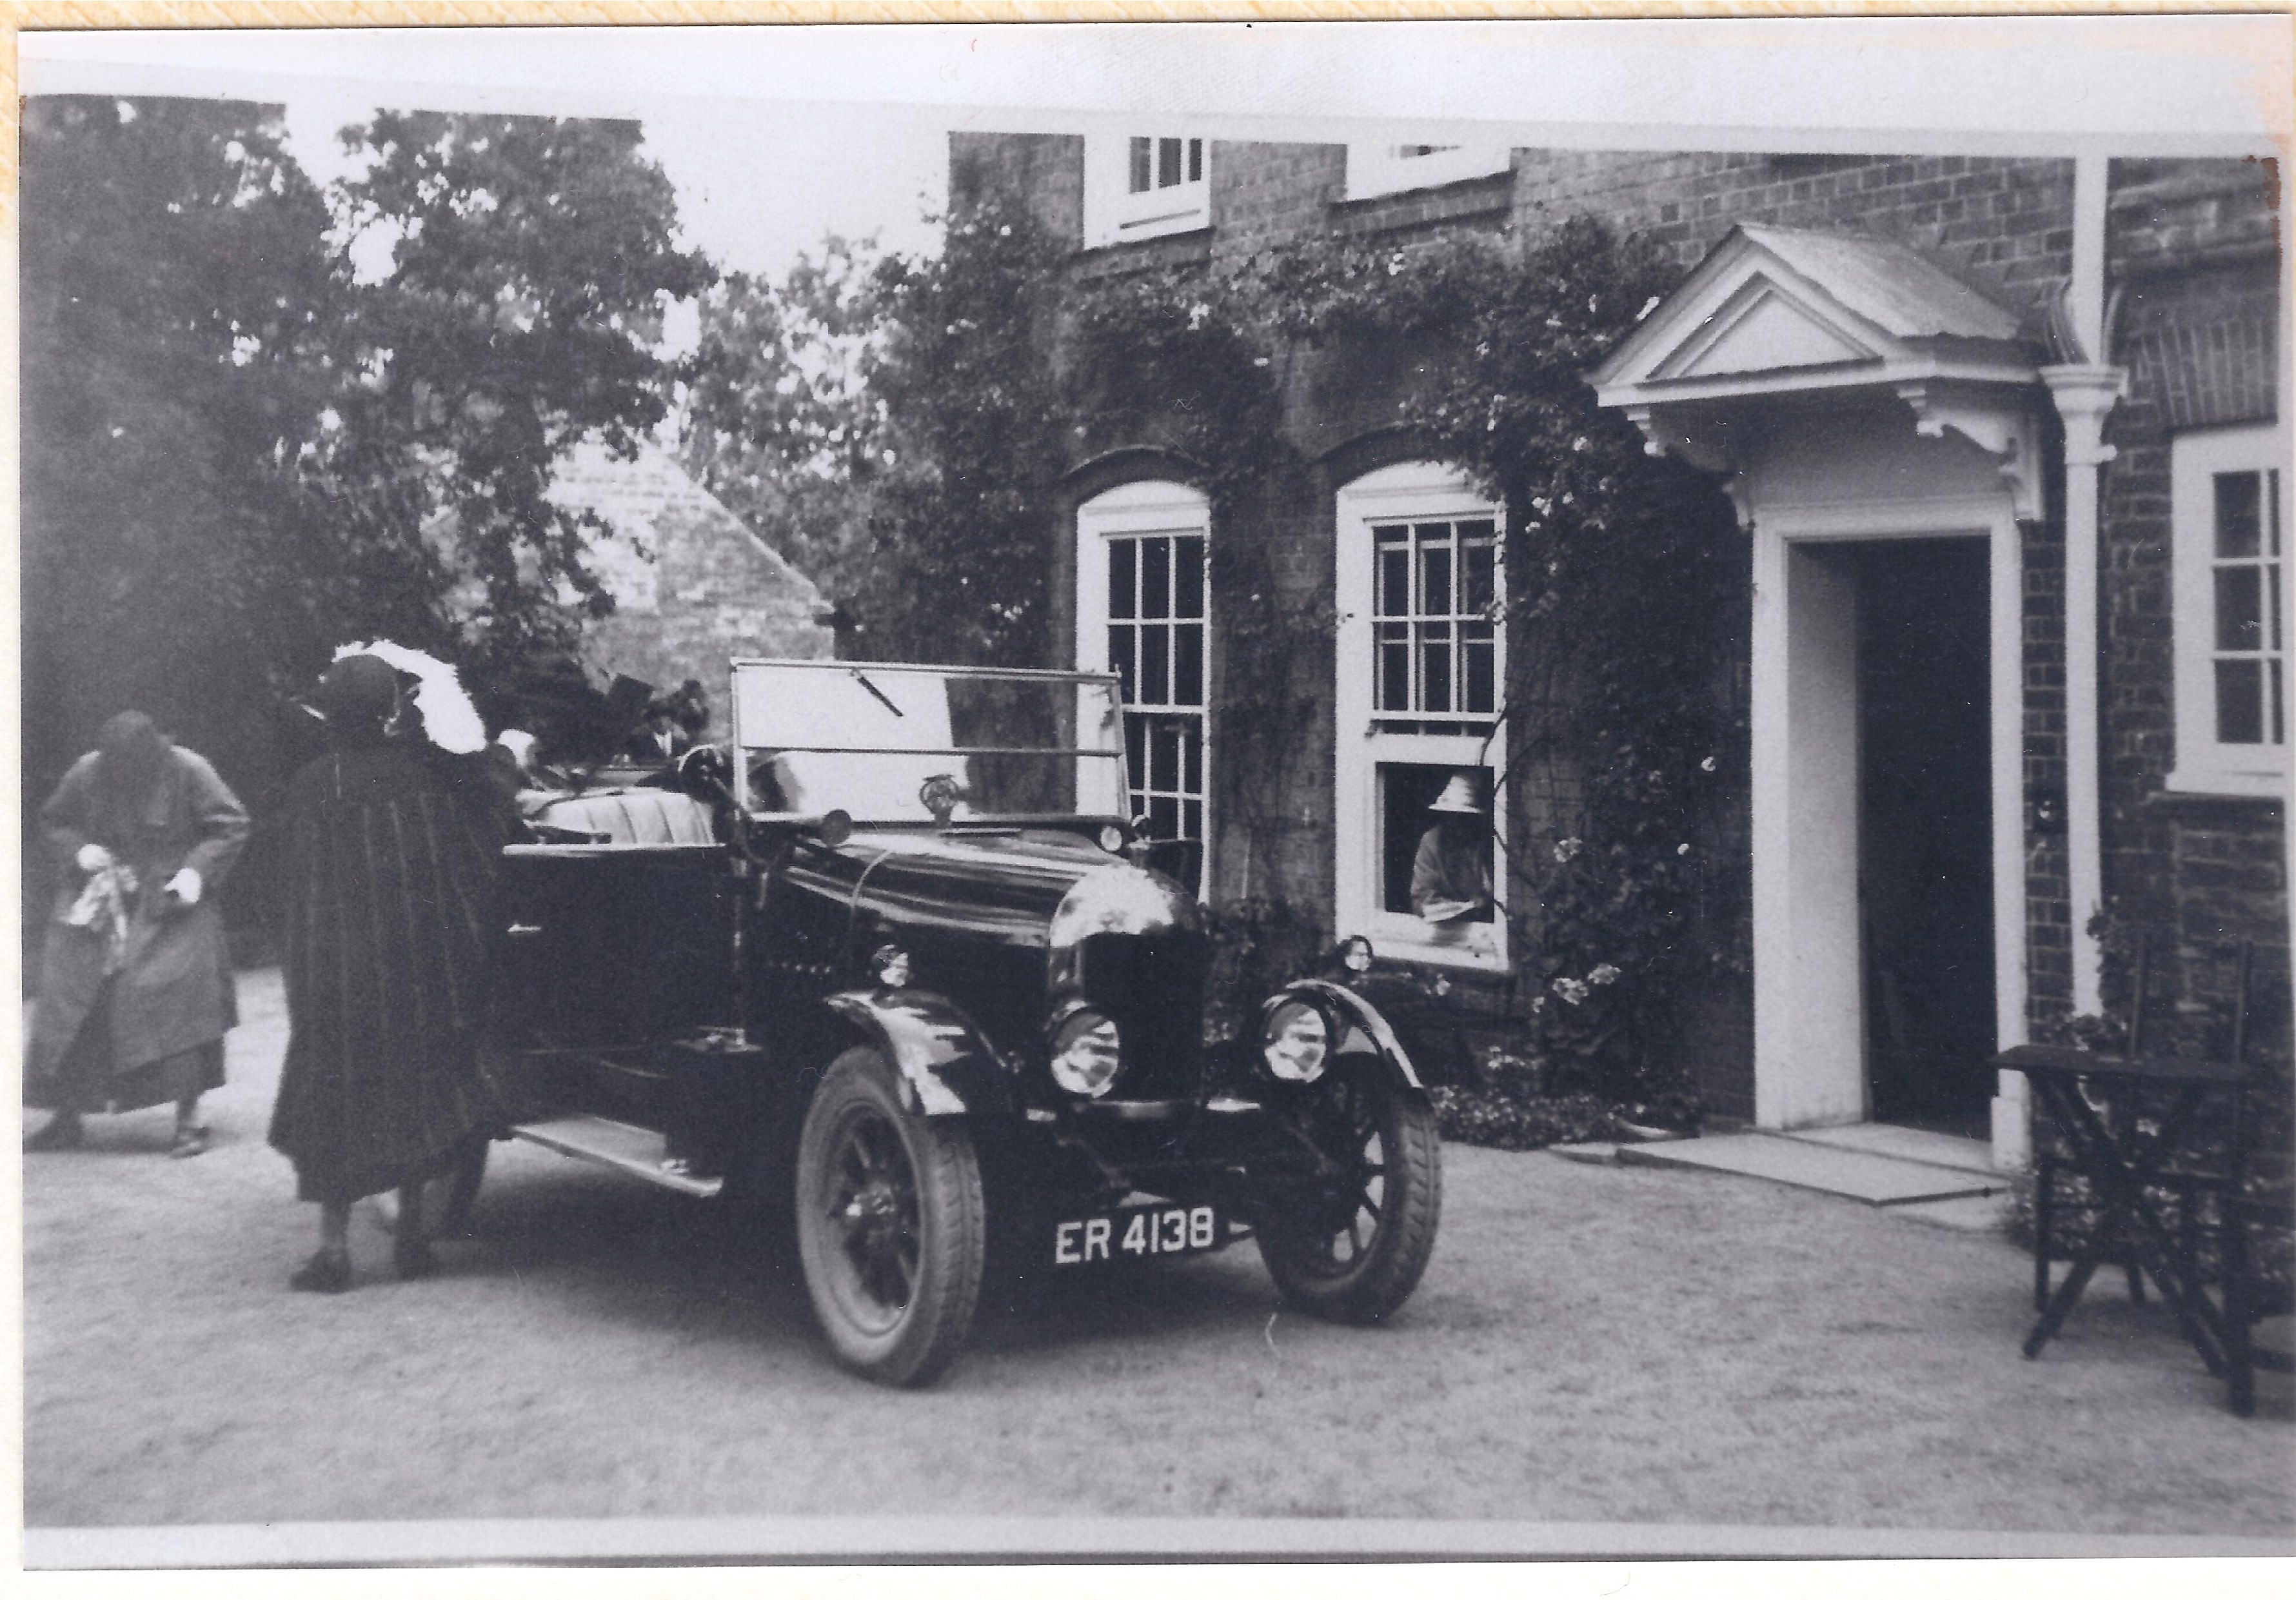 An early history of cars